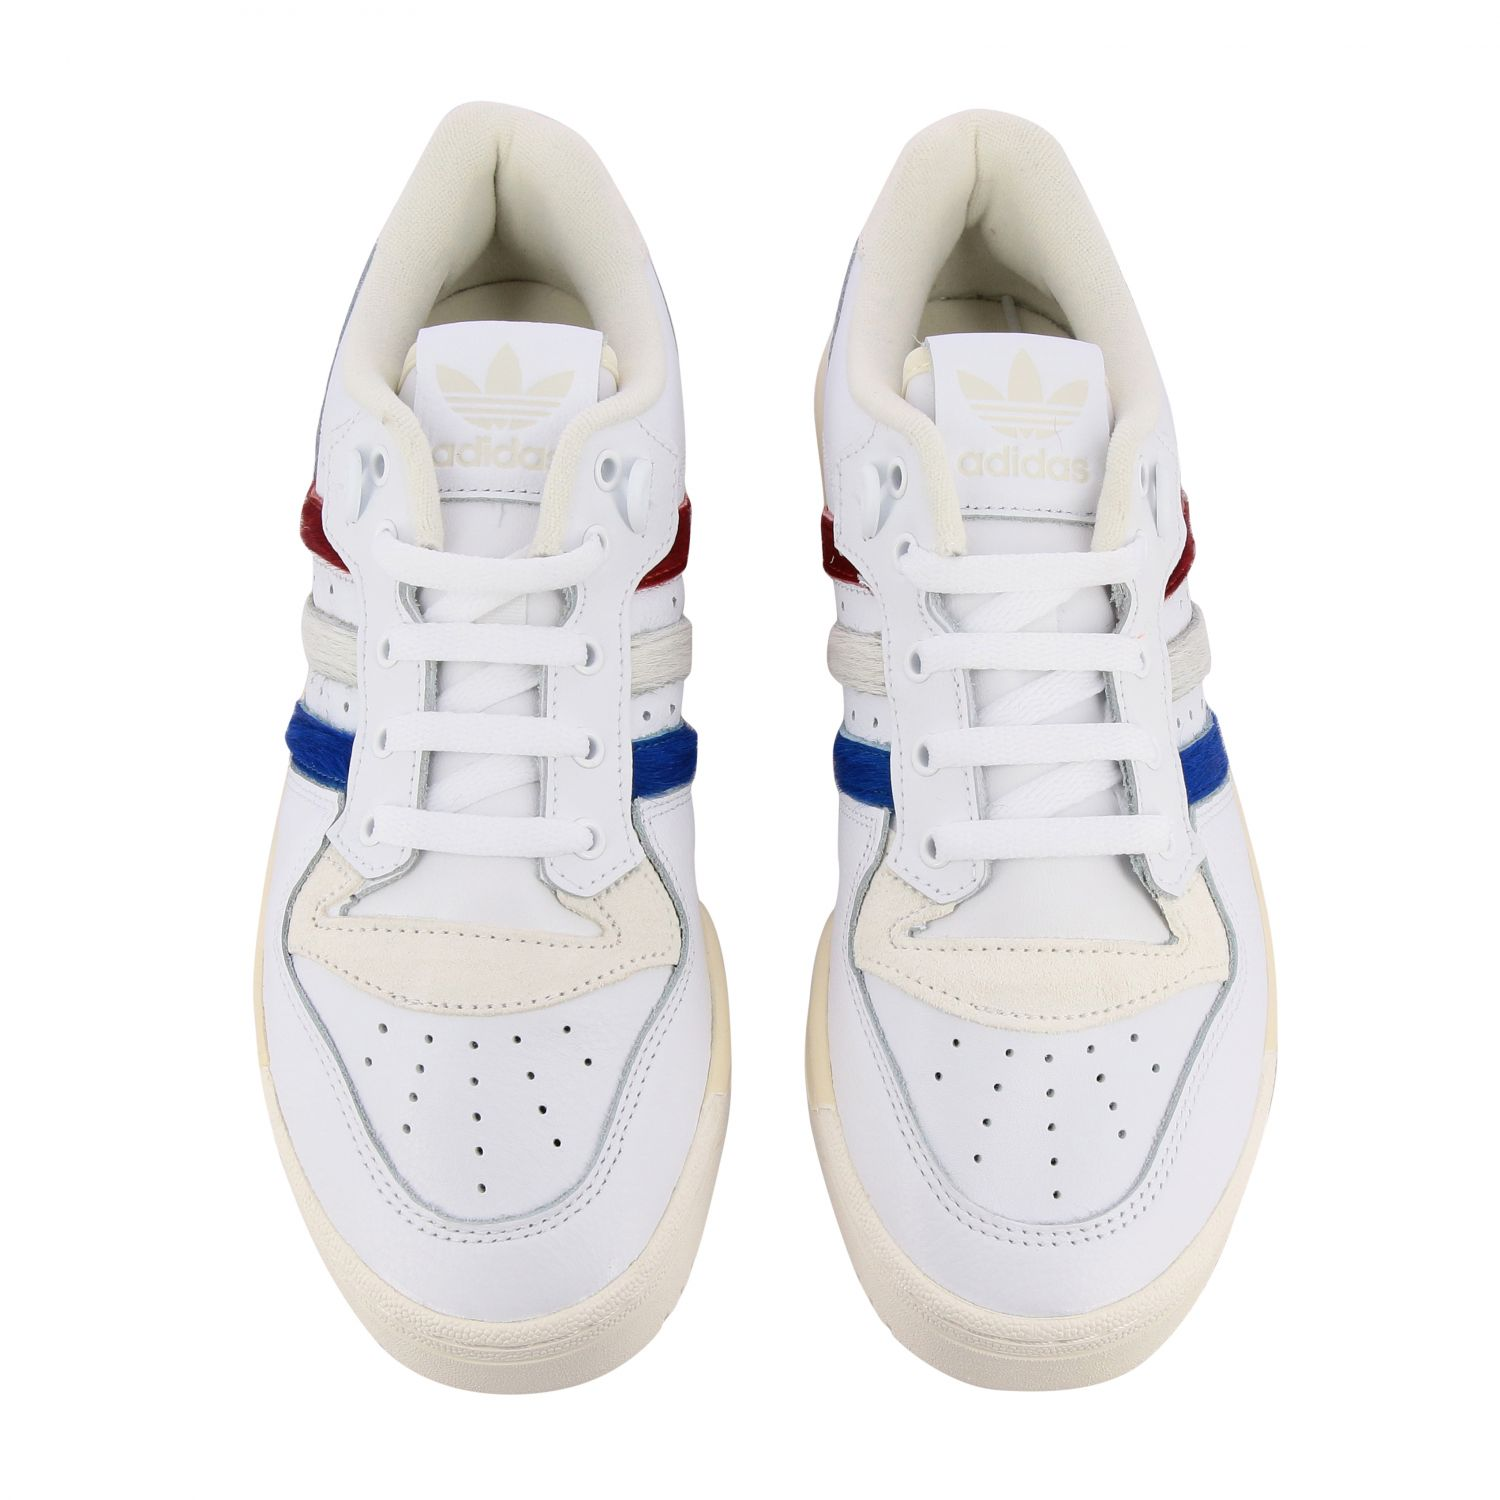 Sneakers Adidas Originals: Shoes men Adidas Originals white 3